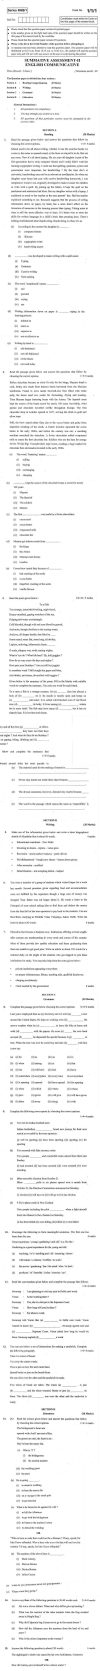 CBSE Class X Previous Year Question Papers 2011: English Communicative